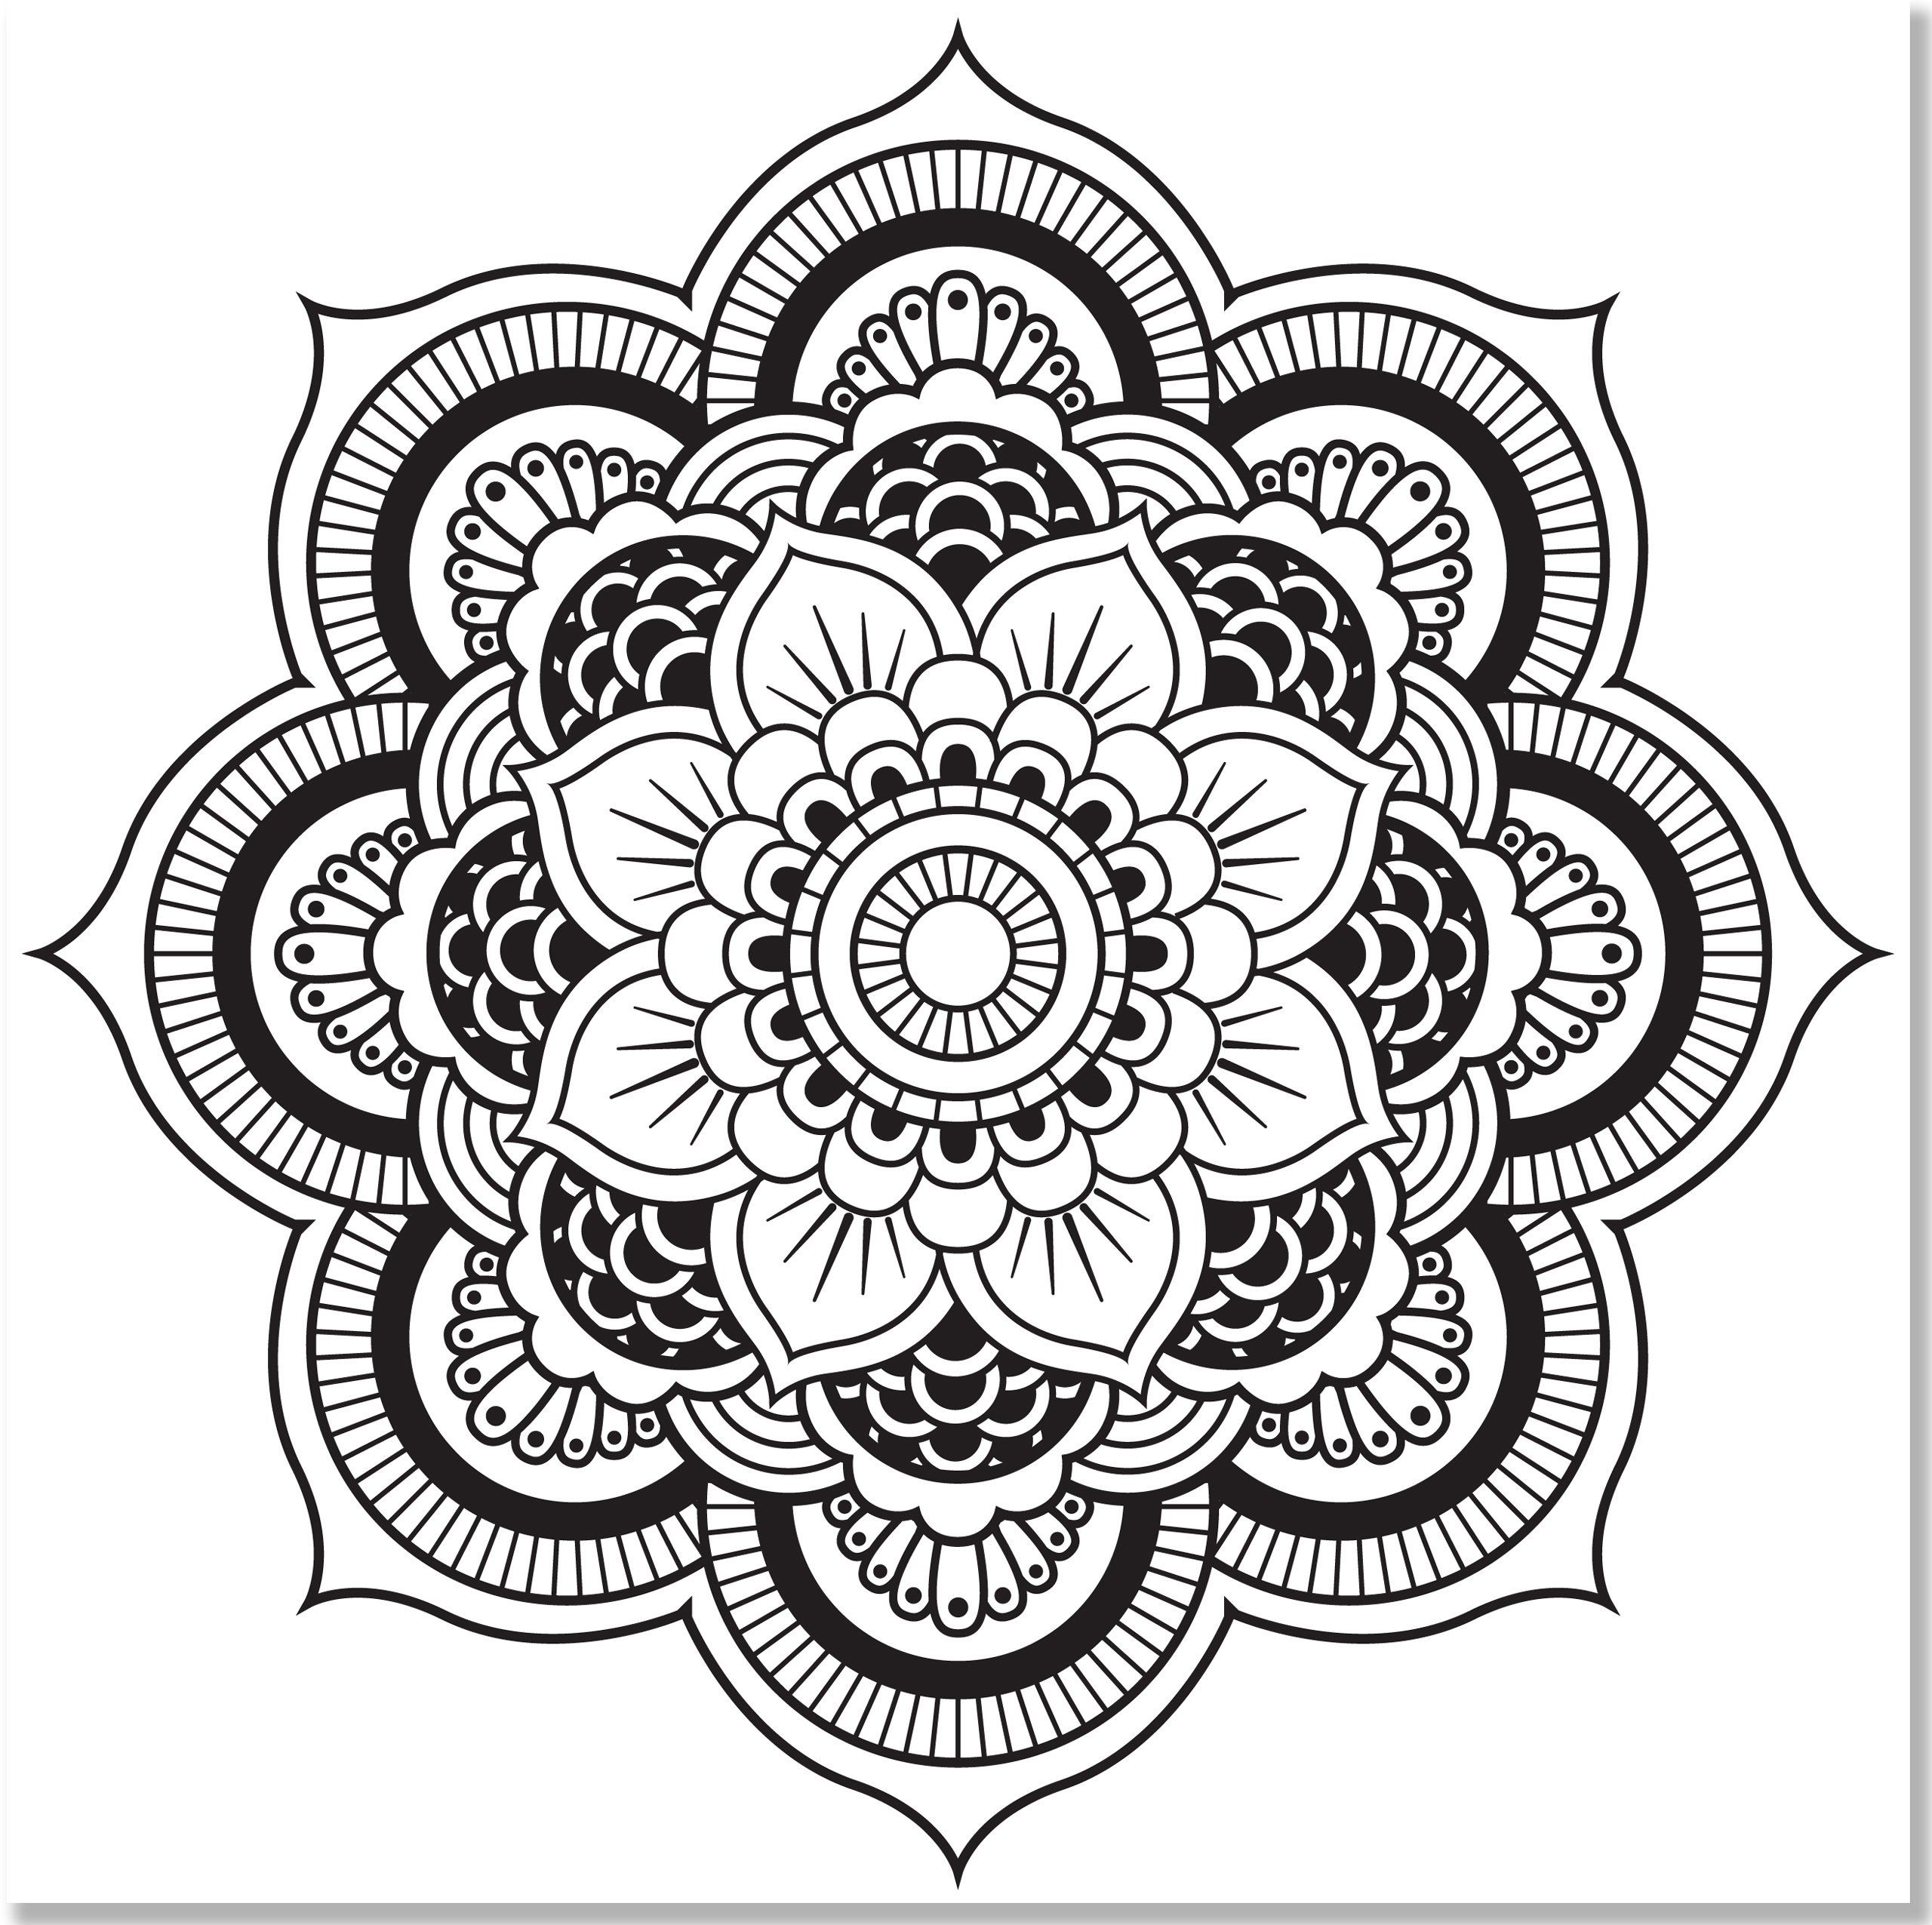 Free coloring pages kaleidoscope designs - Printable Mandala Printable Coloring Pages With 498 Free Mandala Coloring Pages For Adults Printable Mandala Printable Coloring Pages Mandala Ideas